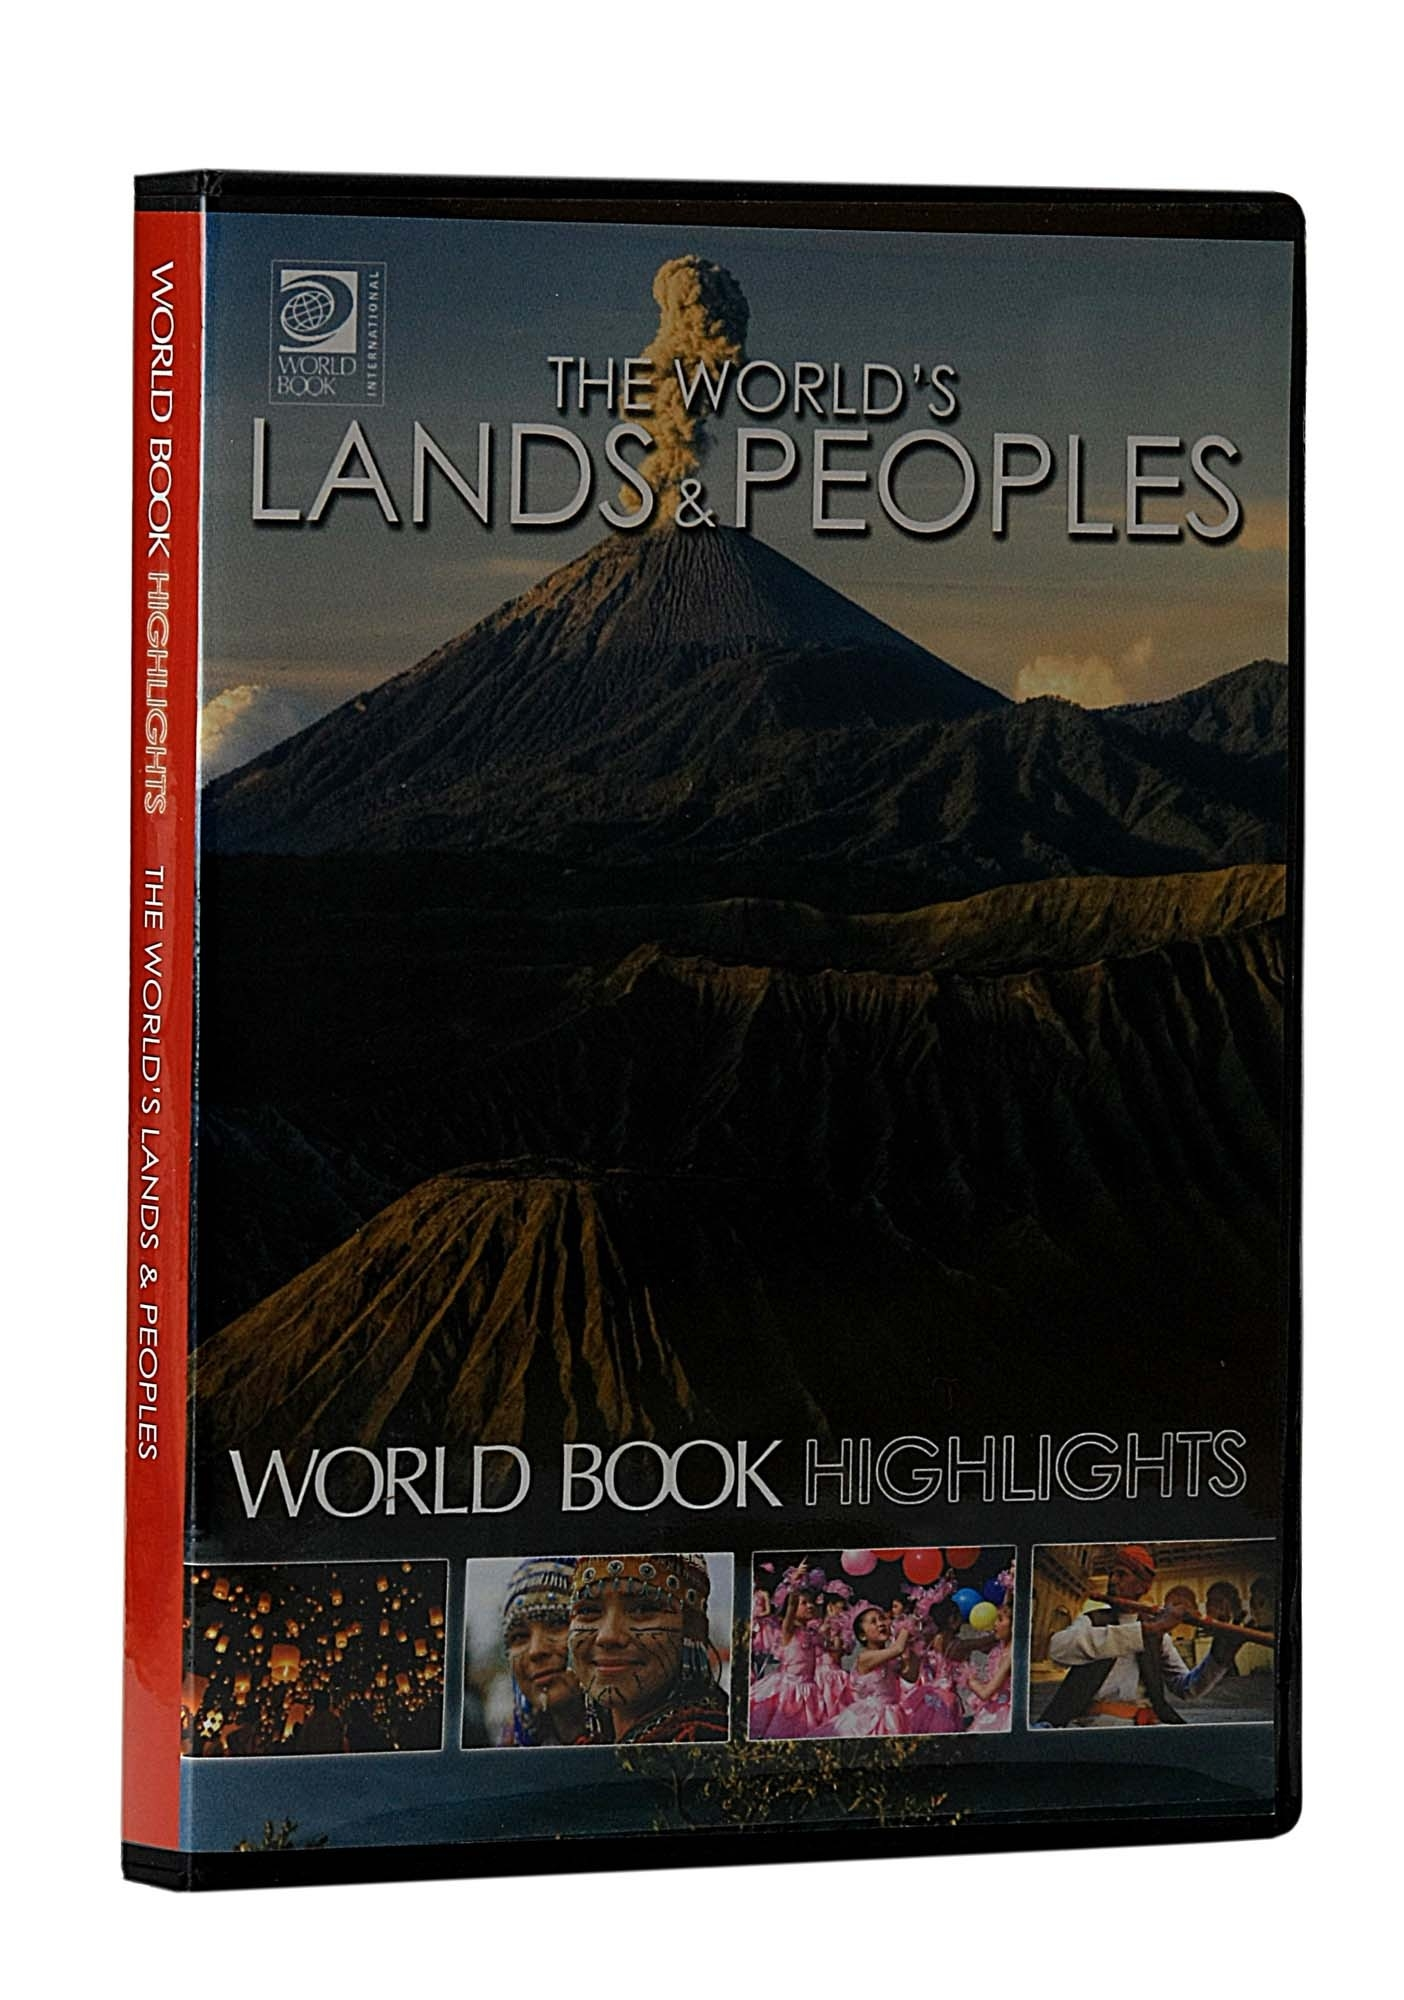 The World's Land & Peoples at Rs. 1